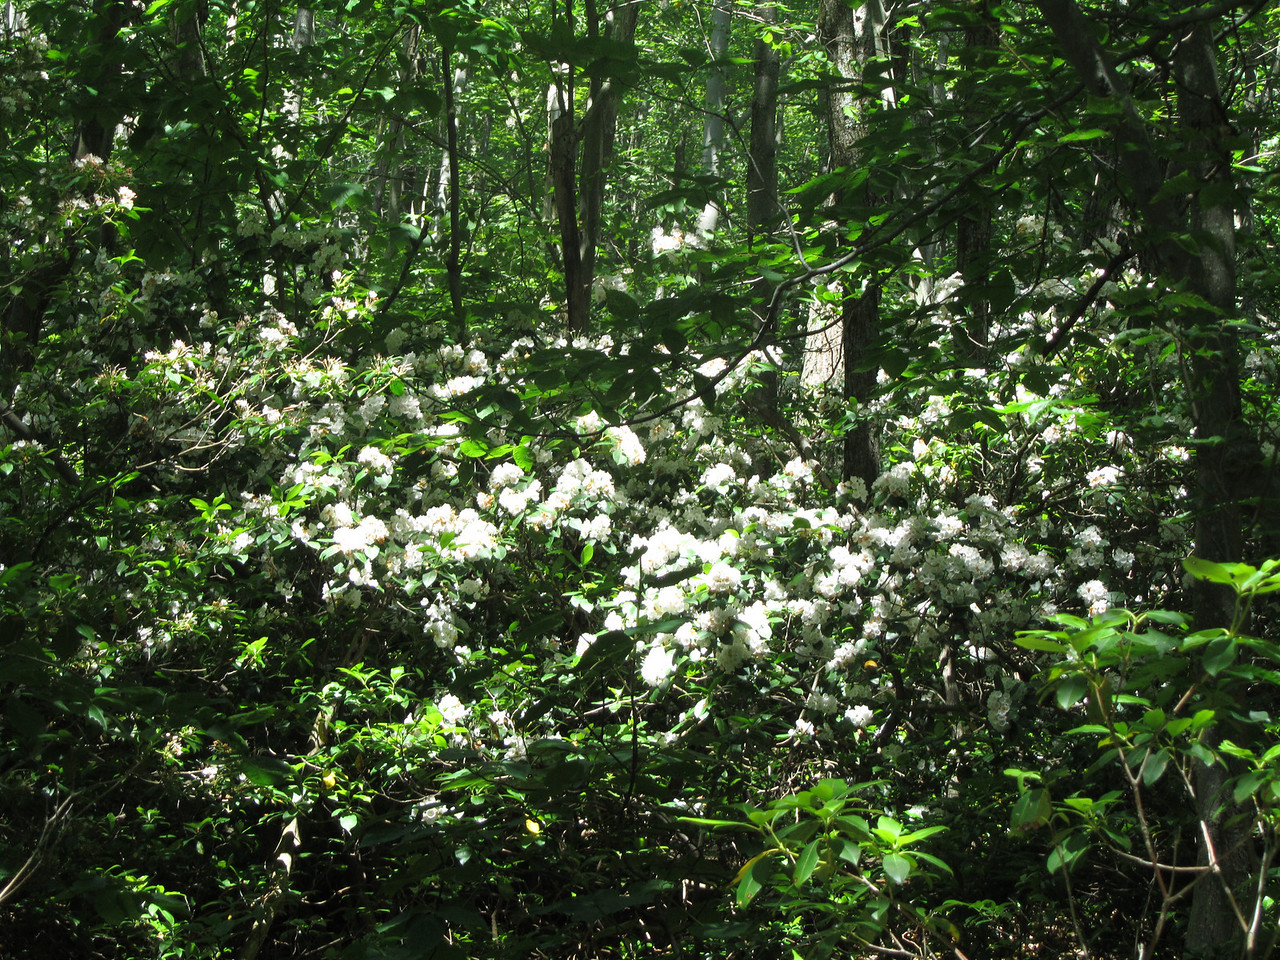 More Mountain Laurel on the Jeep trail